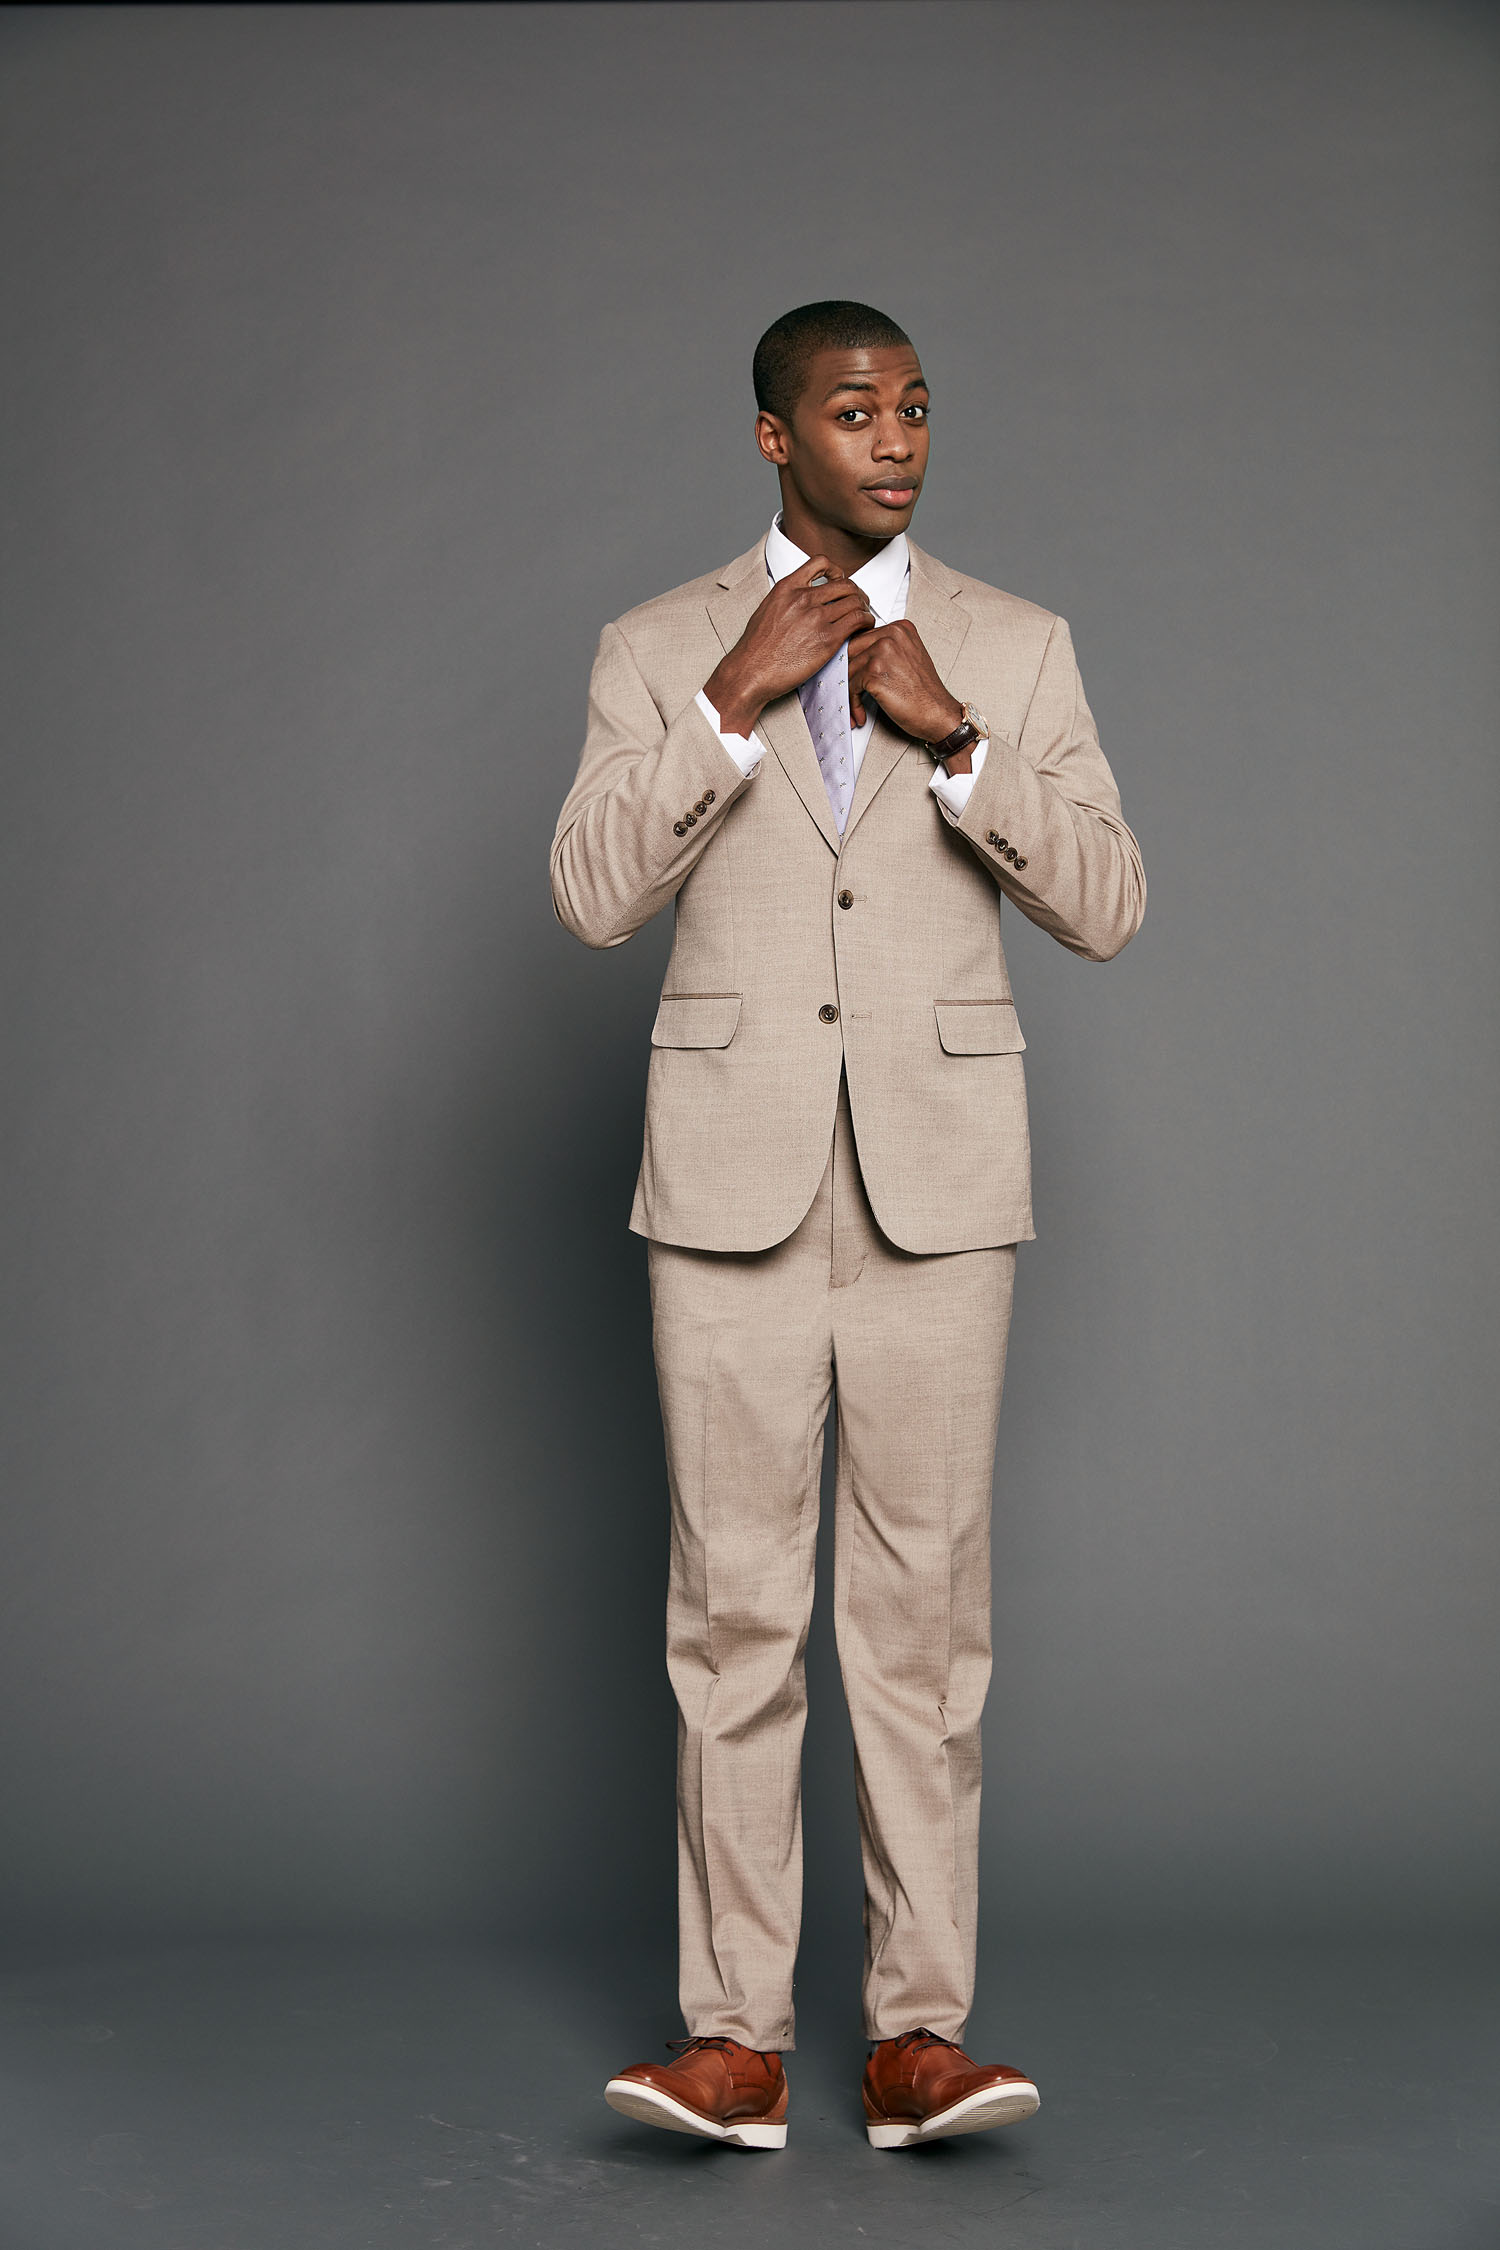 Tan suit for groom